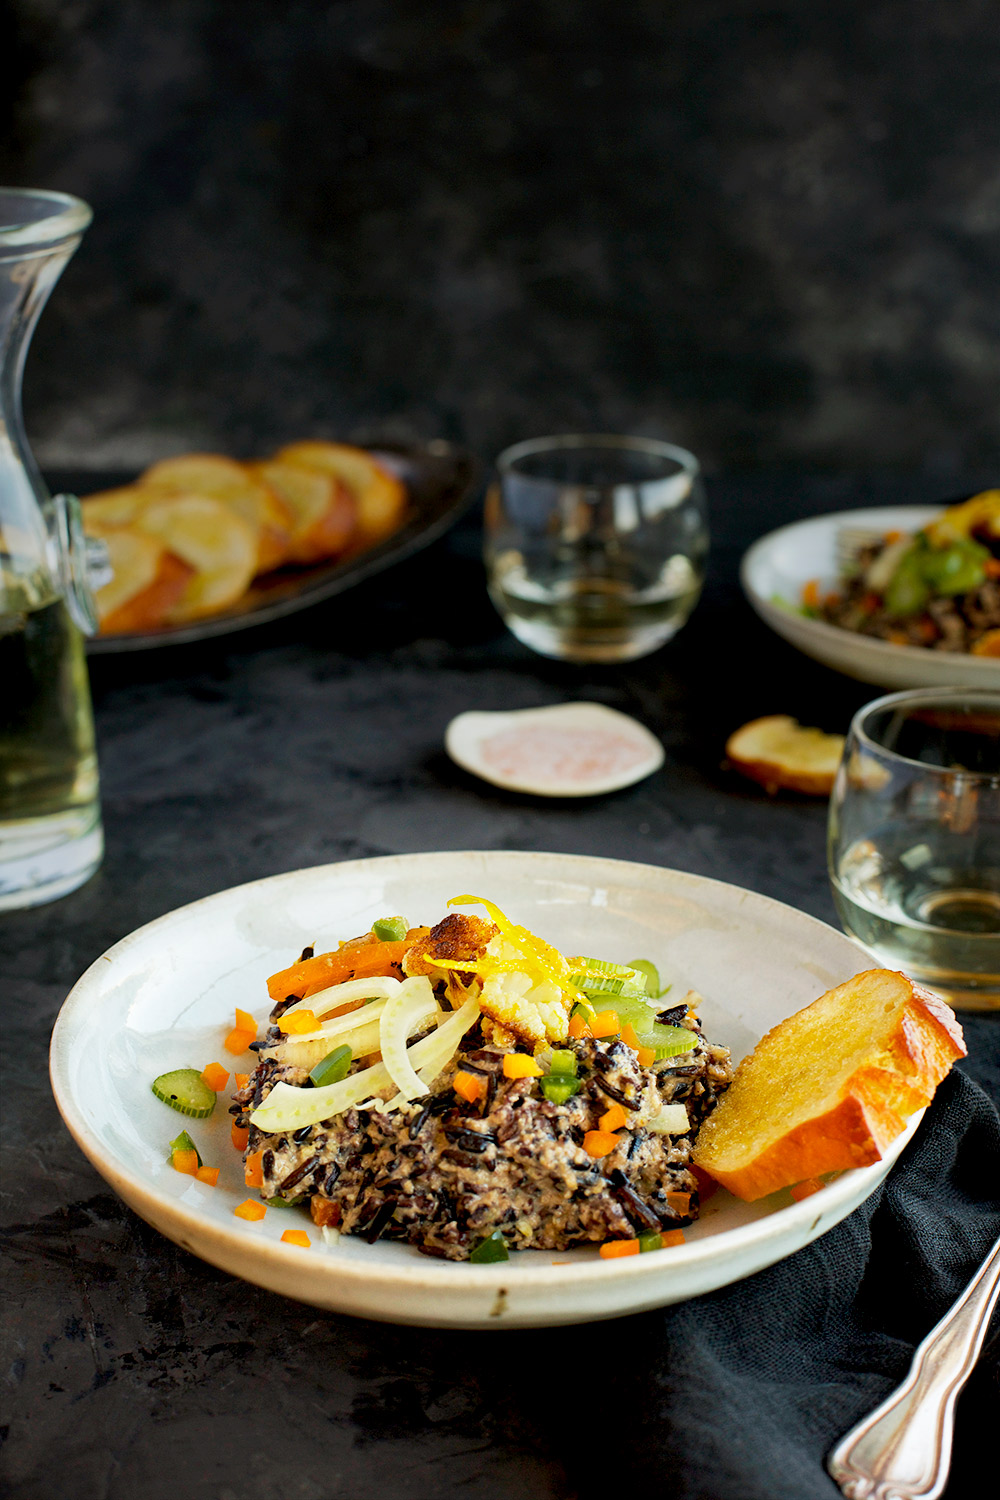 Vegetable Wild Rice with Spicy Roasted Cauliflower Citrus Pesto